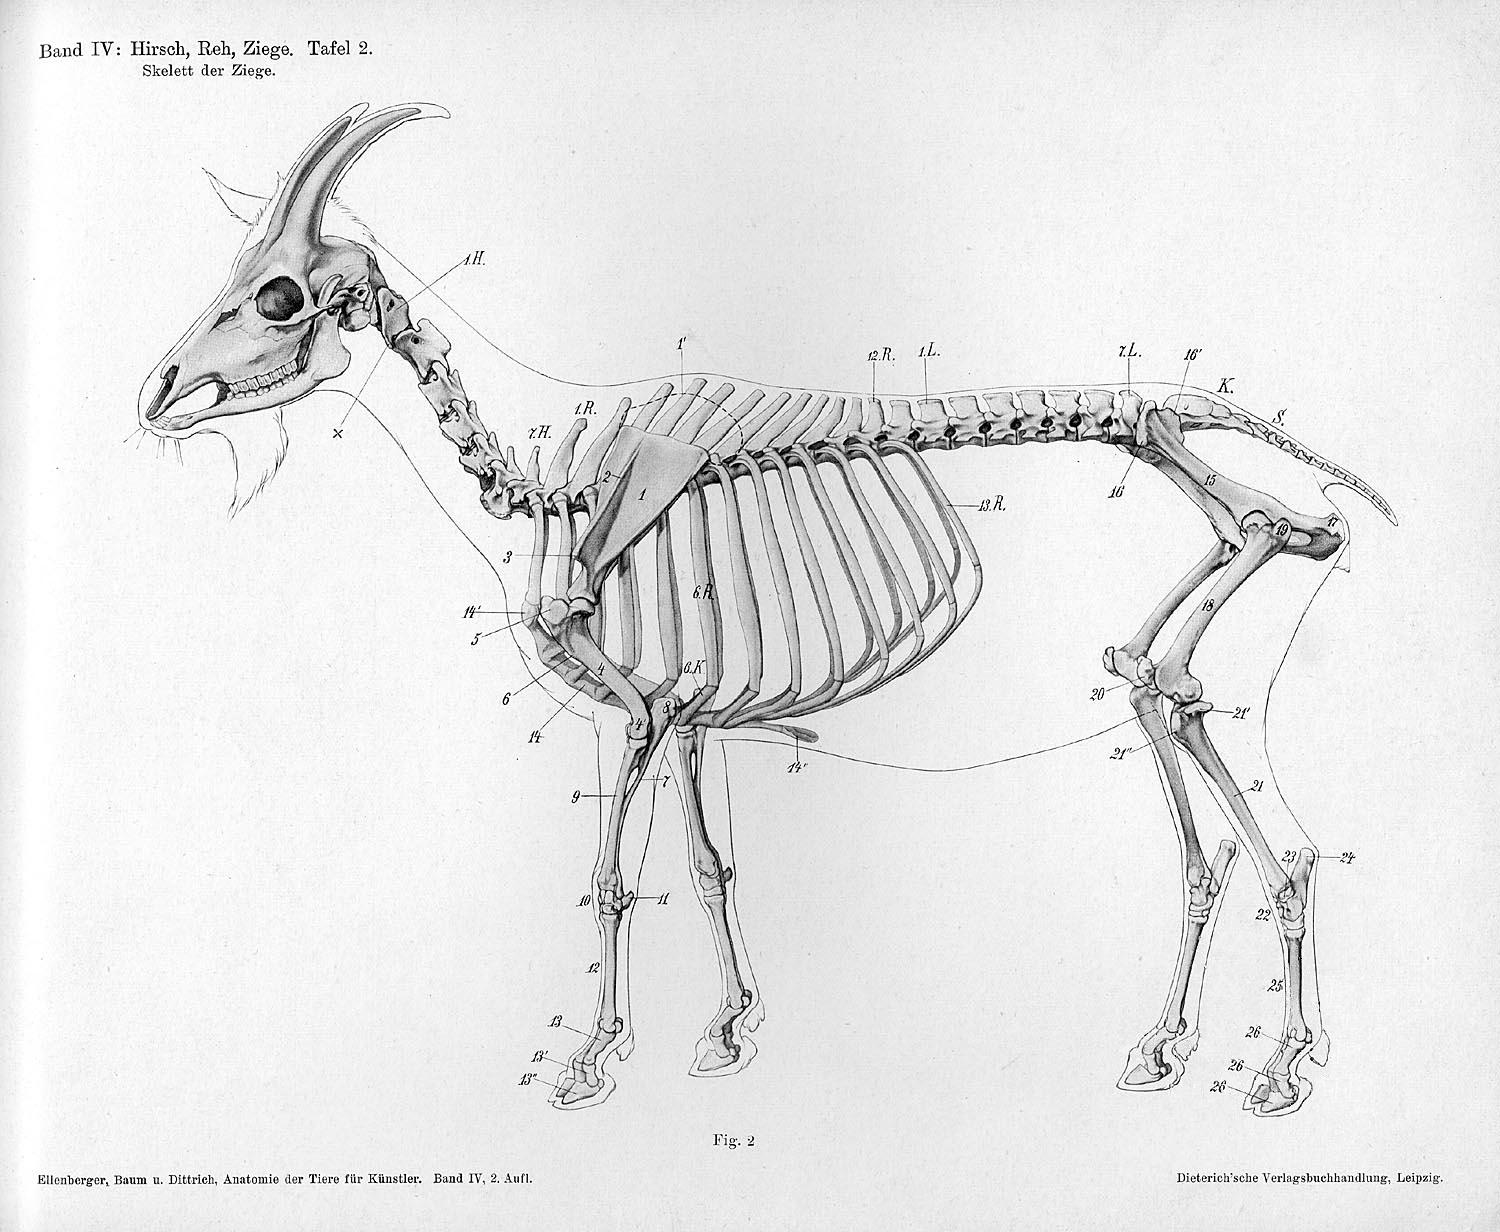 Goat_anatomy_lateral_skeleton_view.jpg